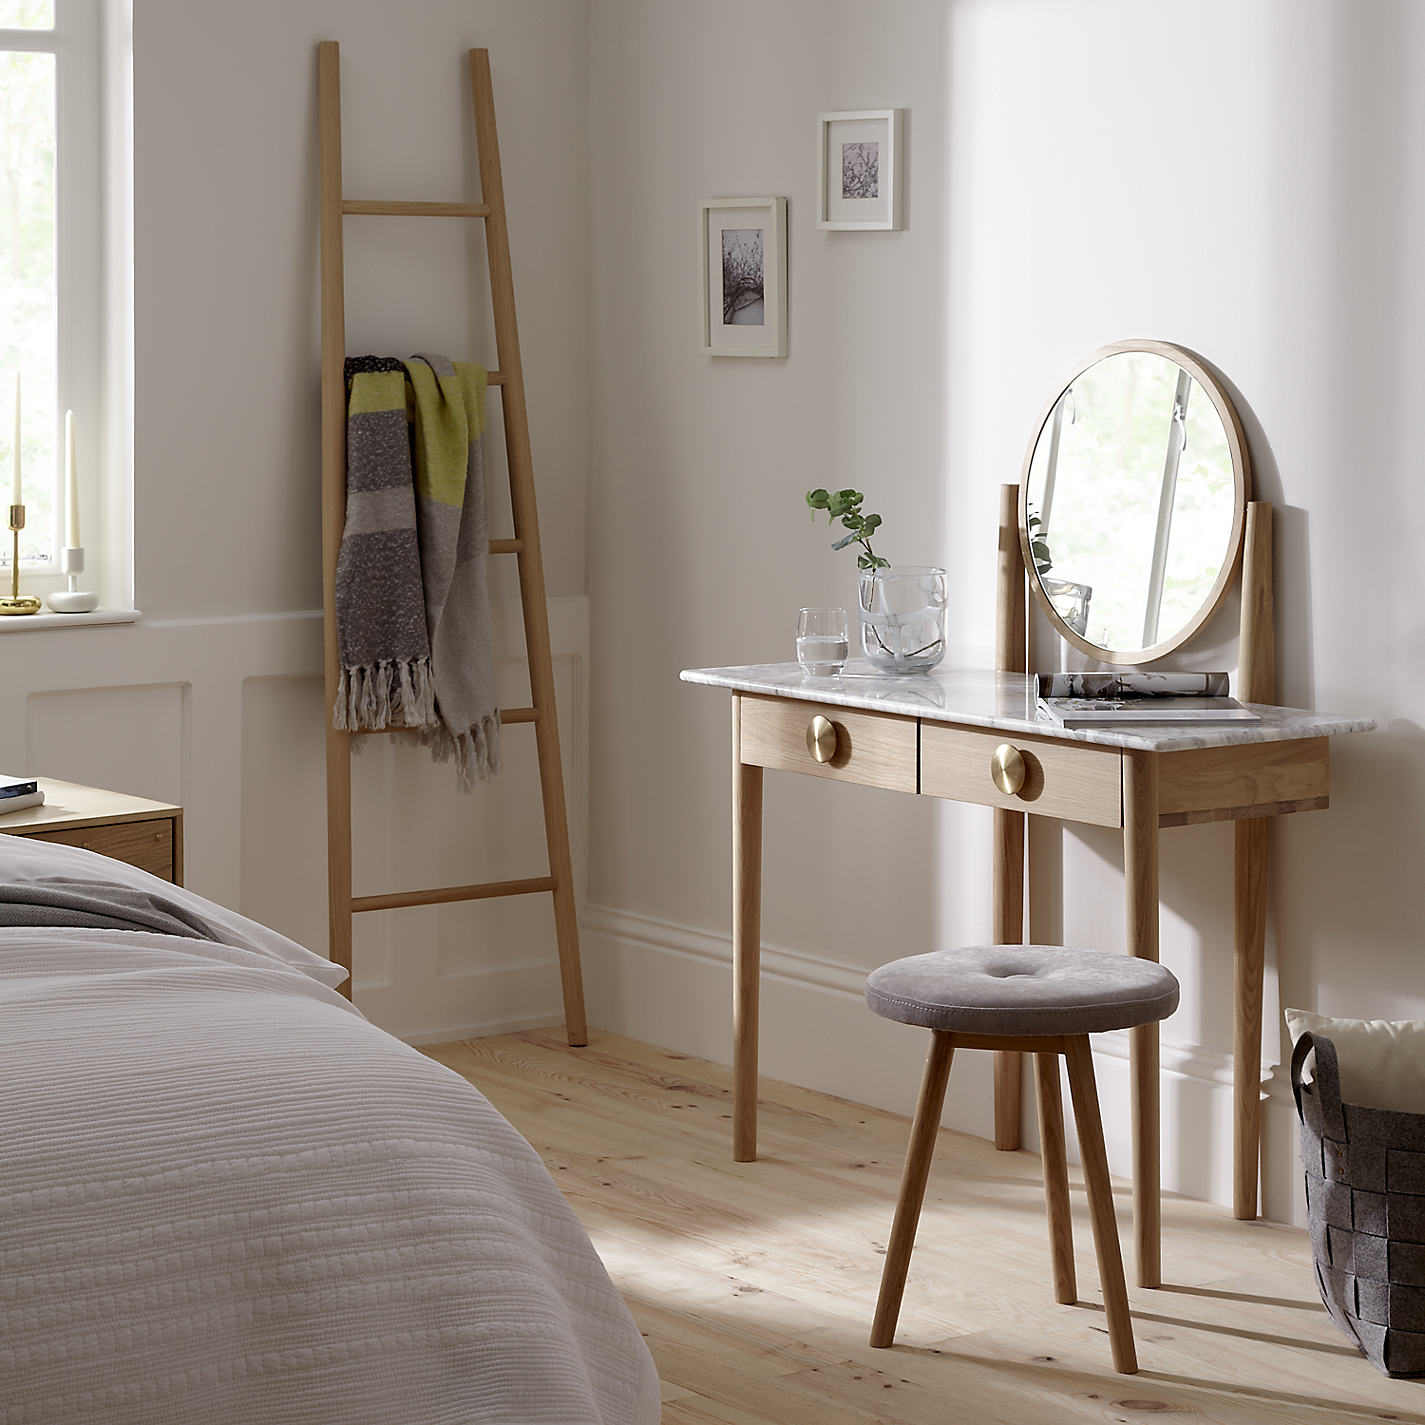 Bedroom Furniture John Lewis buy bethan gray for john lewis genevieve bedroom range | john lewis